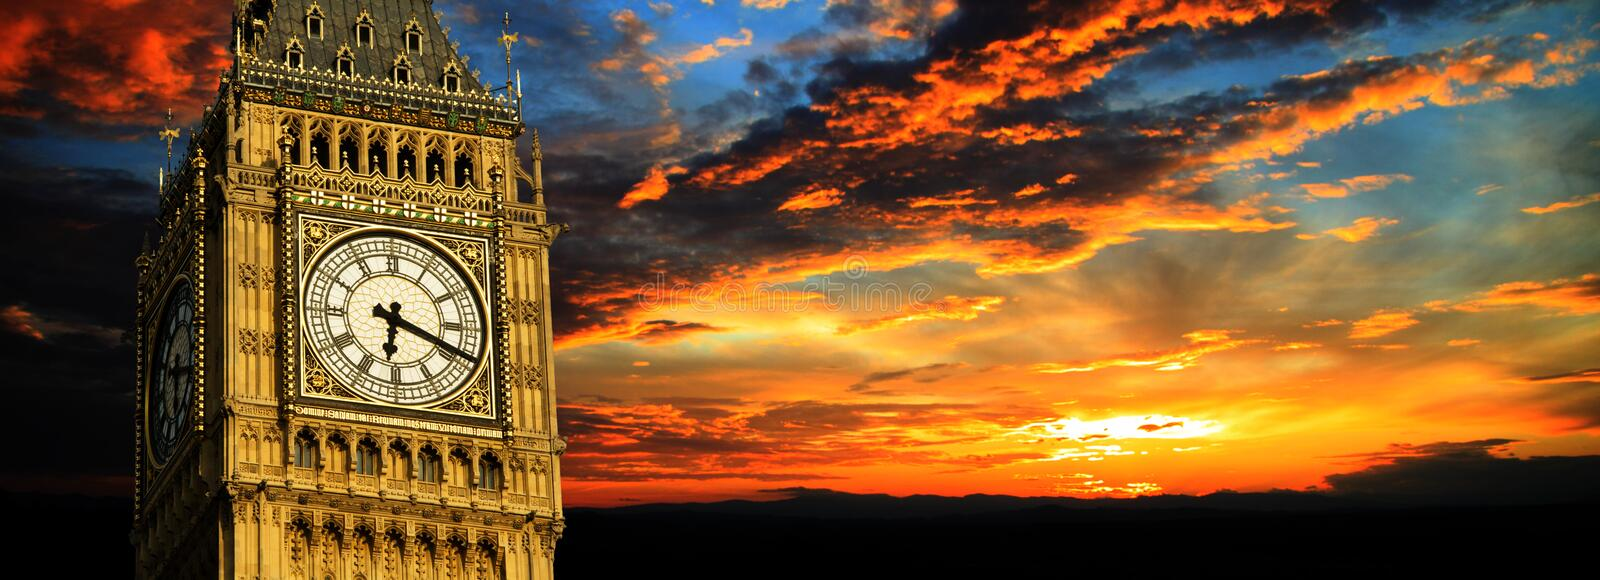 Big Ben at sunset panorama, London stock image